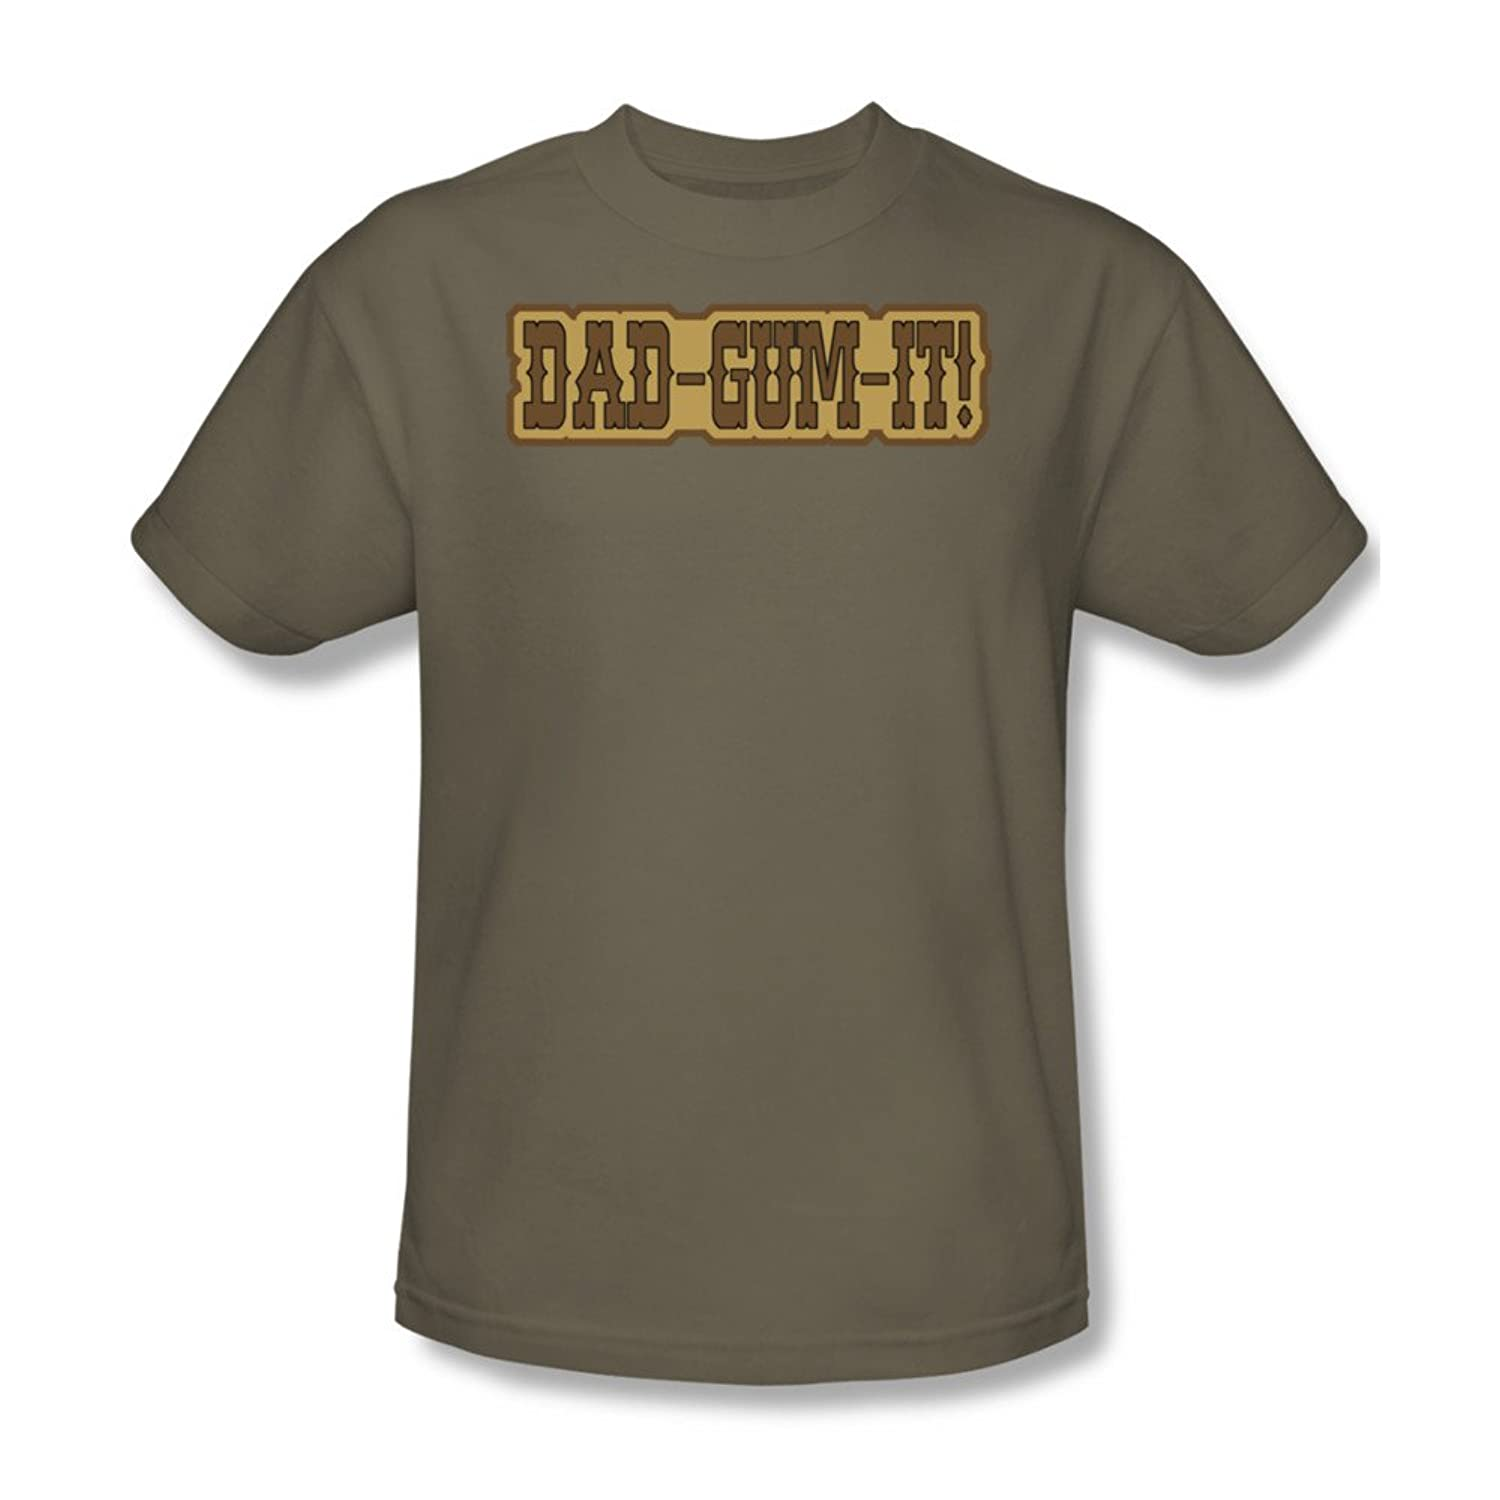 Dad - Mens T-Shirt In Safari Green